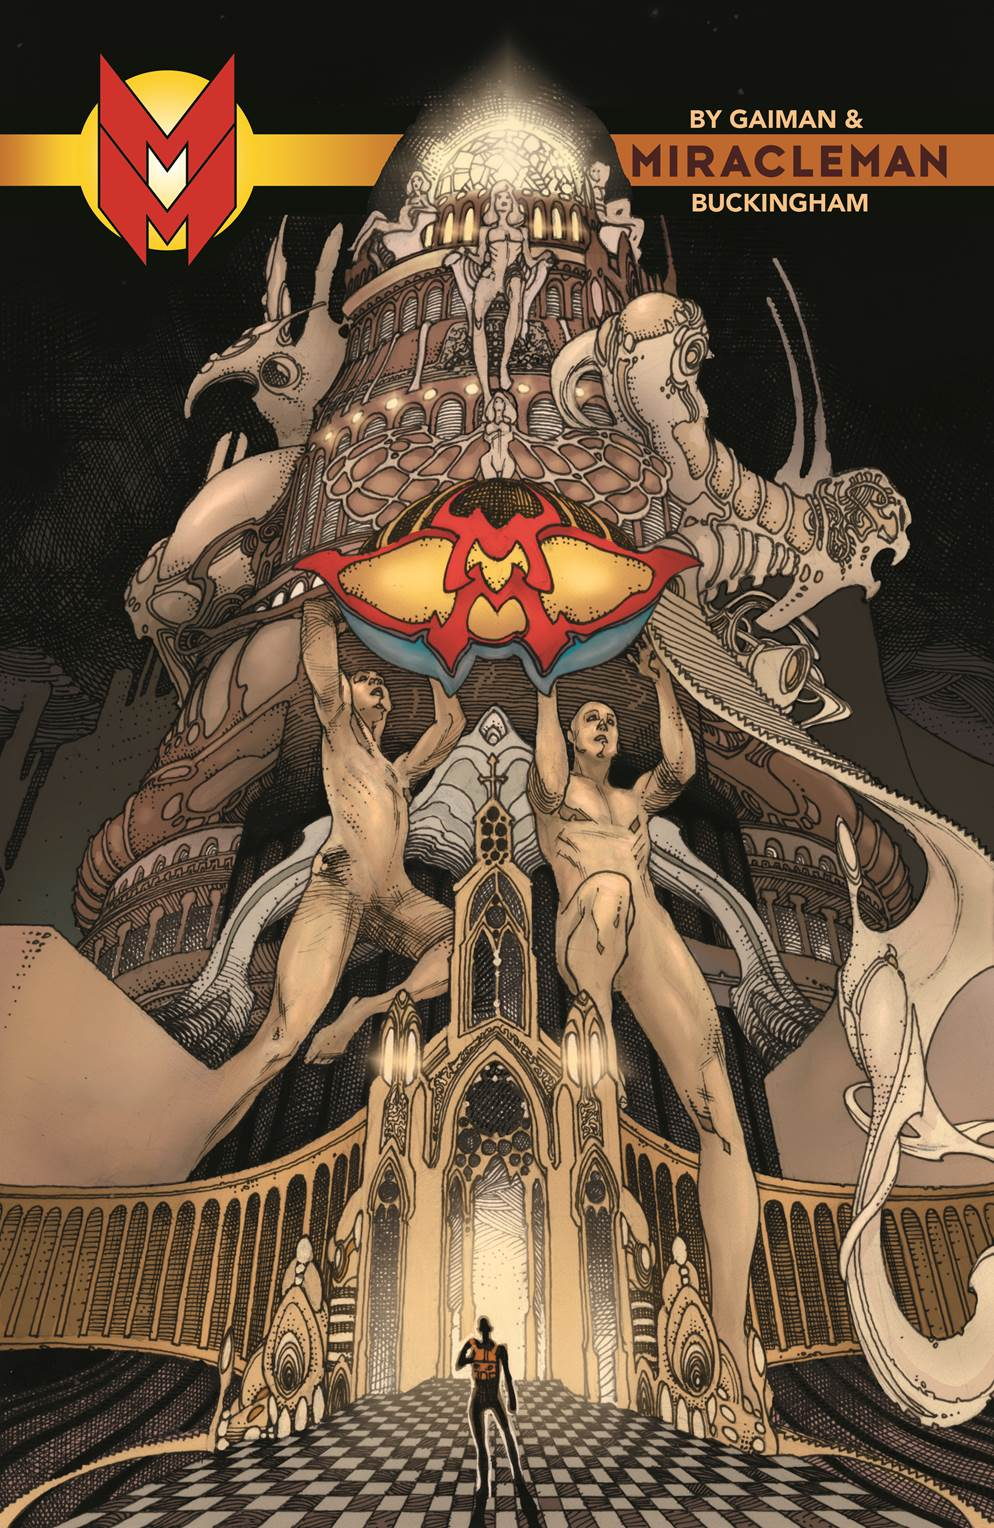 Neil Gaiman & Mark Buckingham Begin The Golden Age in Miracleman by Gaiman & Buckingham #1!